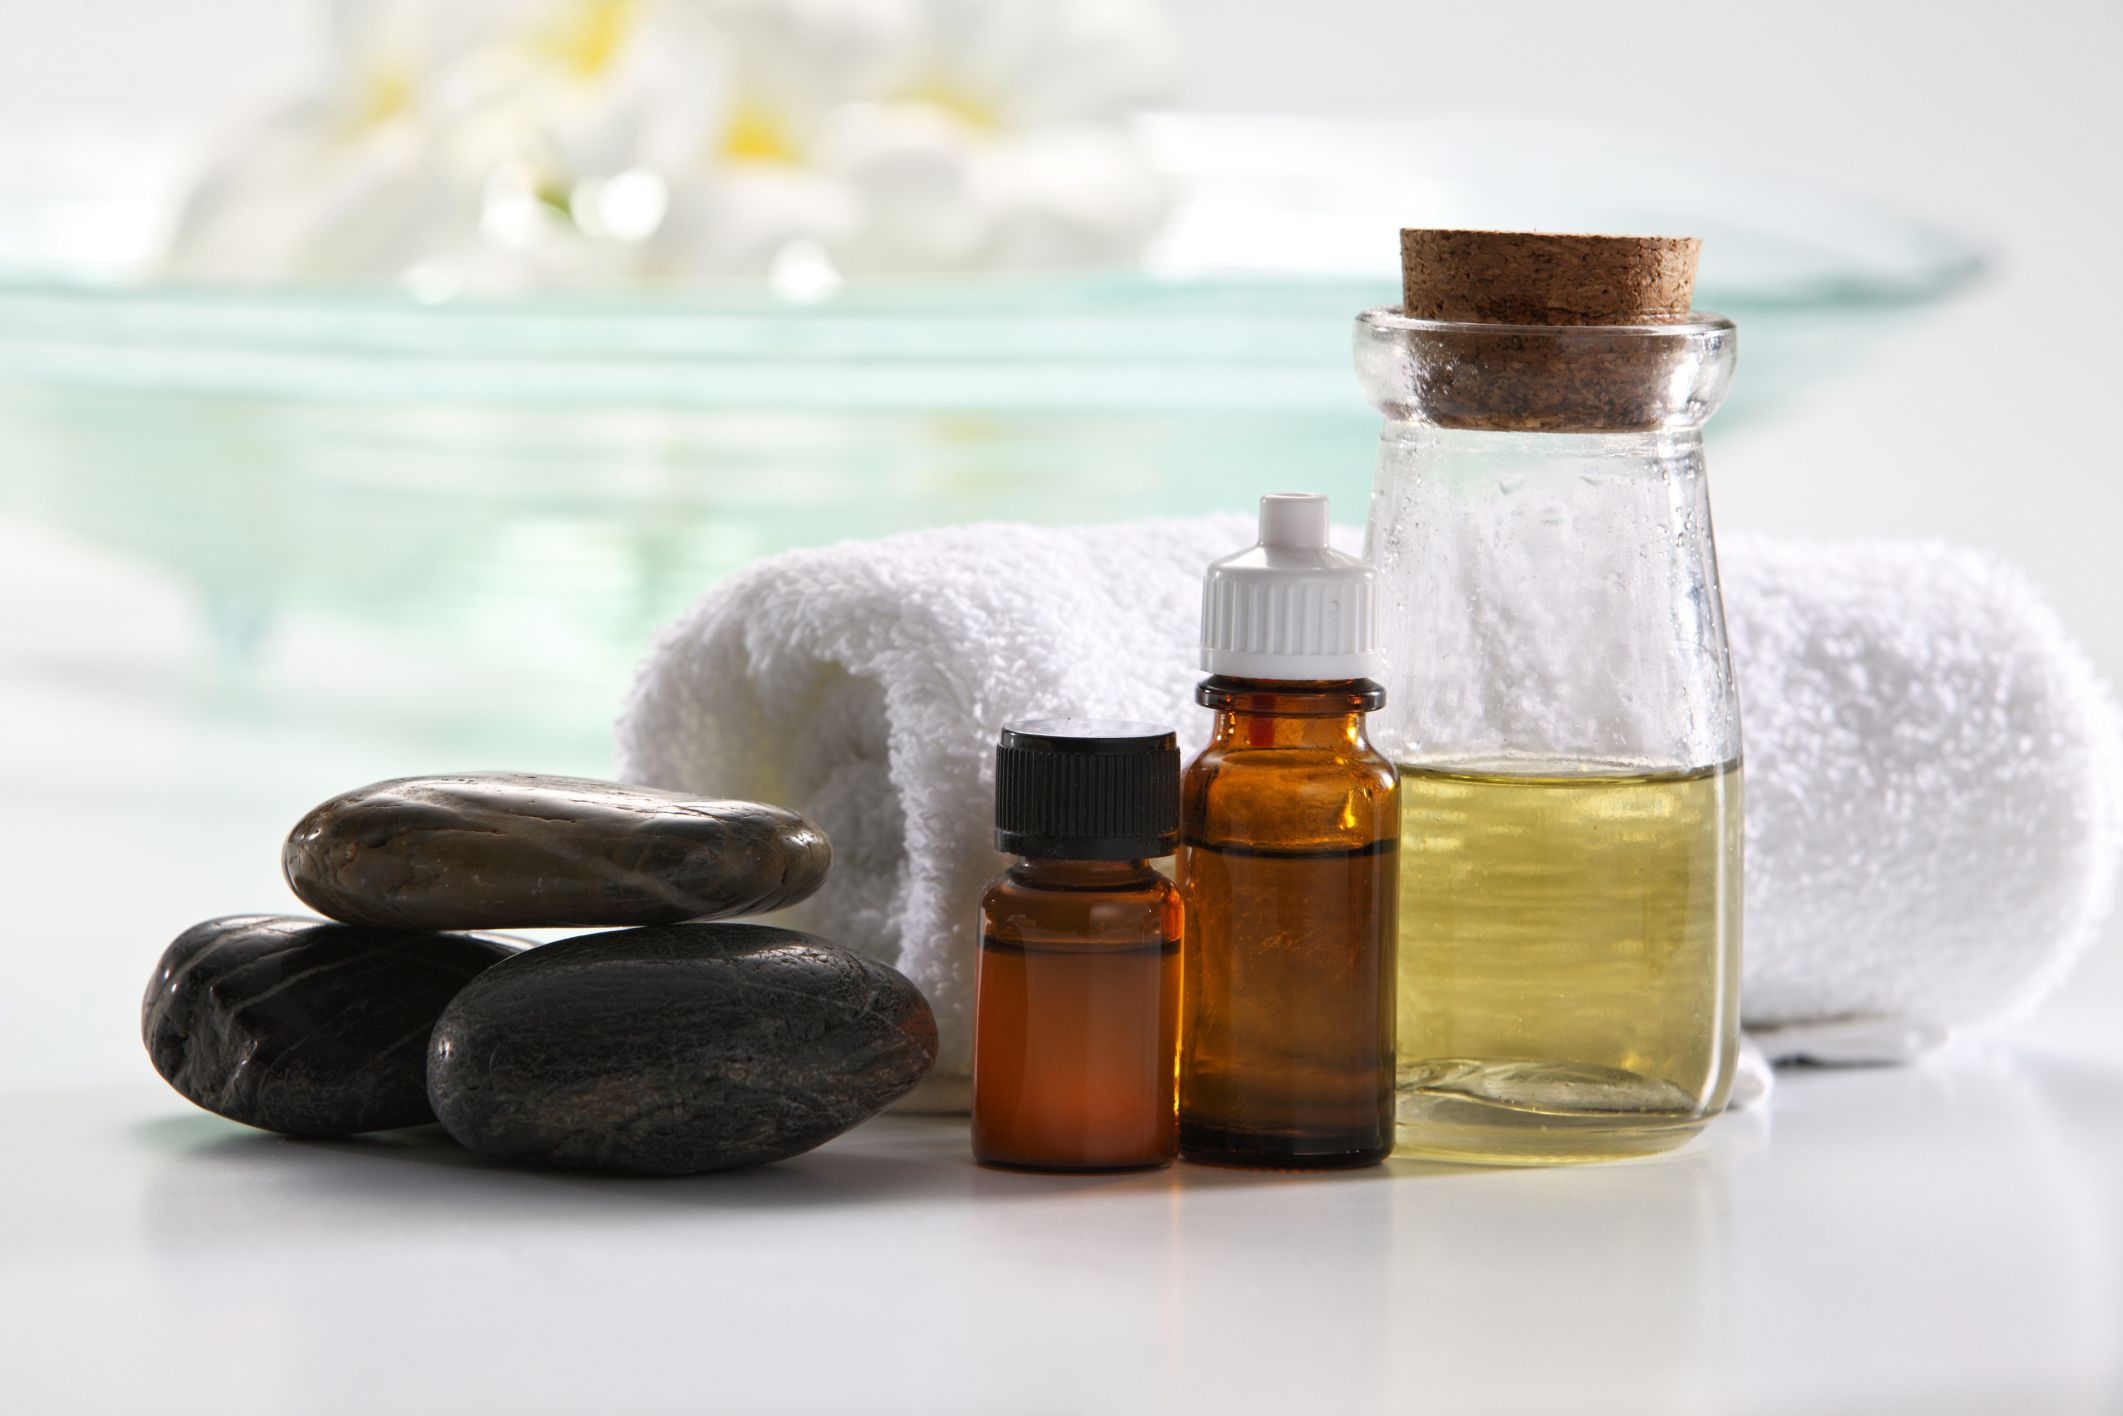 How to Make Scented Oil Homemade essential oils